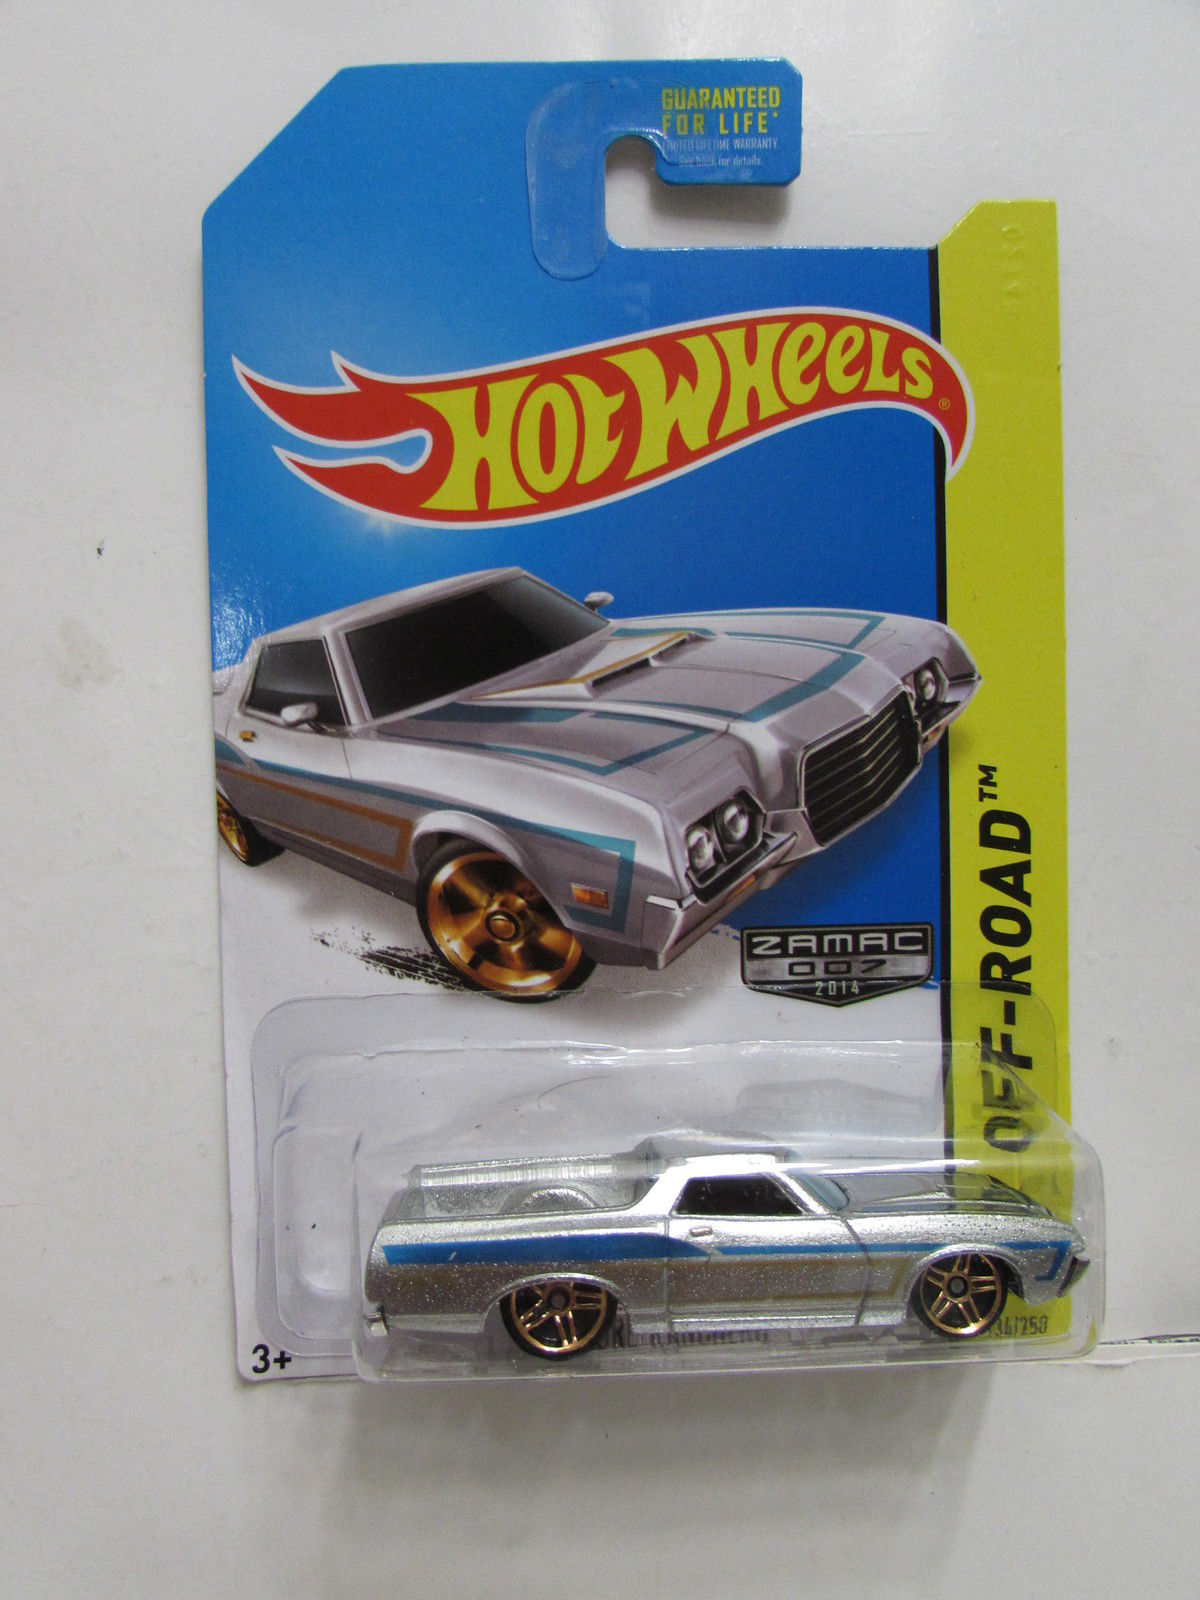 HOT WHEELS 2014 HW OFF ROAD - HW HOT TRUCKS '72 FORD RANCHERO ZAMAC